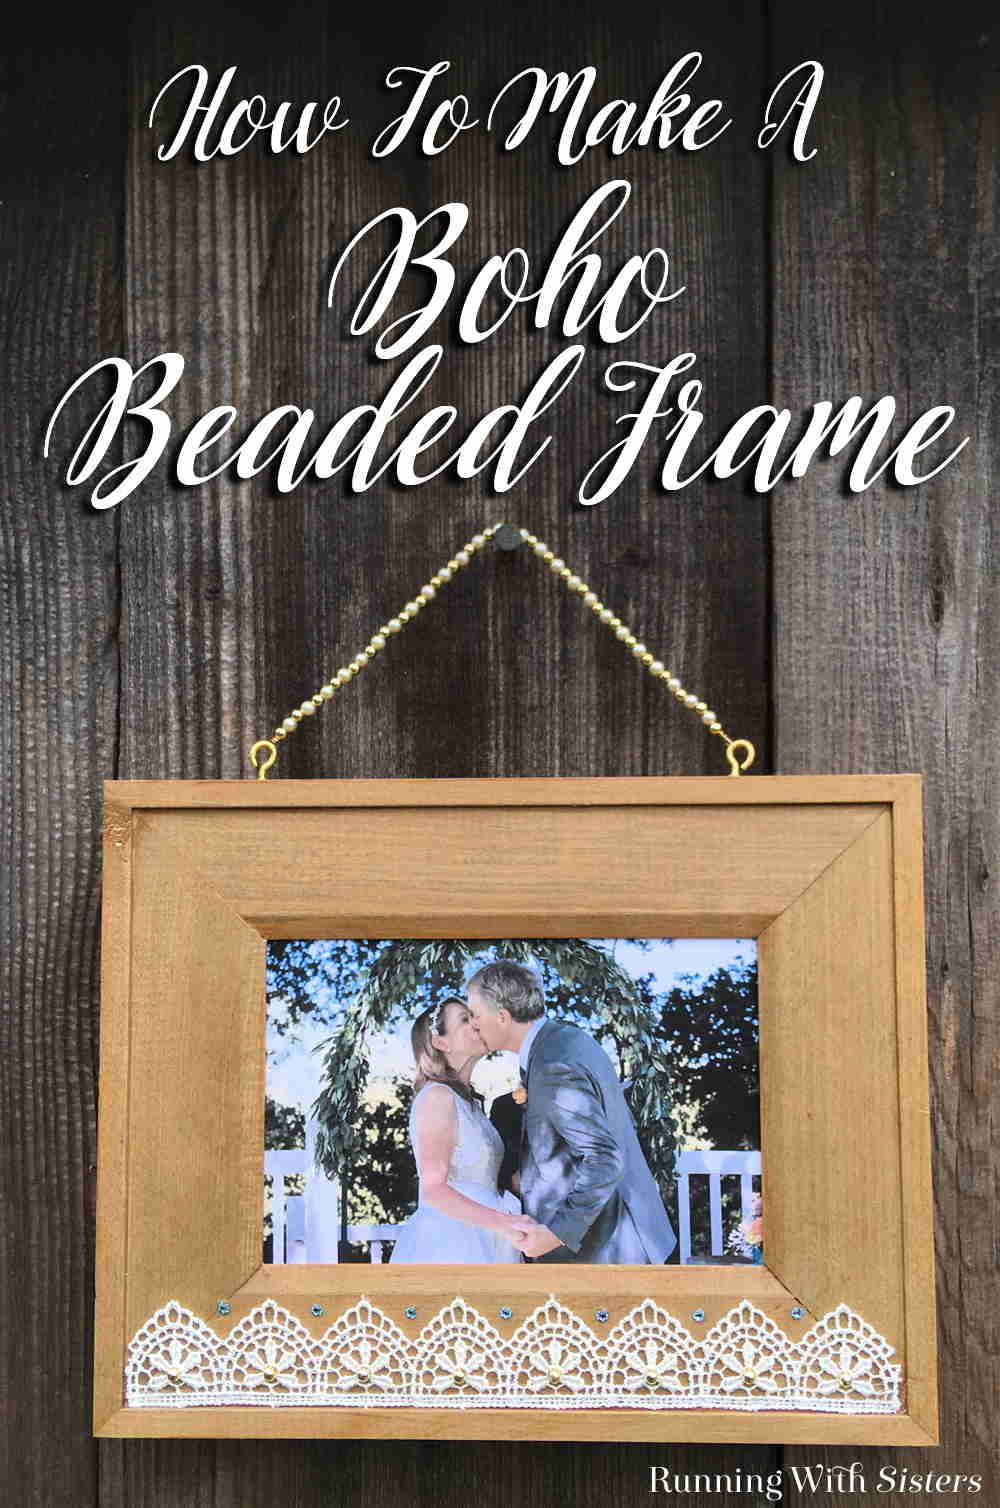 Turn a wooden picture frame into a Bead And Lace Boho Frame. We'll show you how to add lace and beads then make a beaded wire hanger. A great DIY gift!